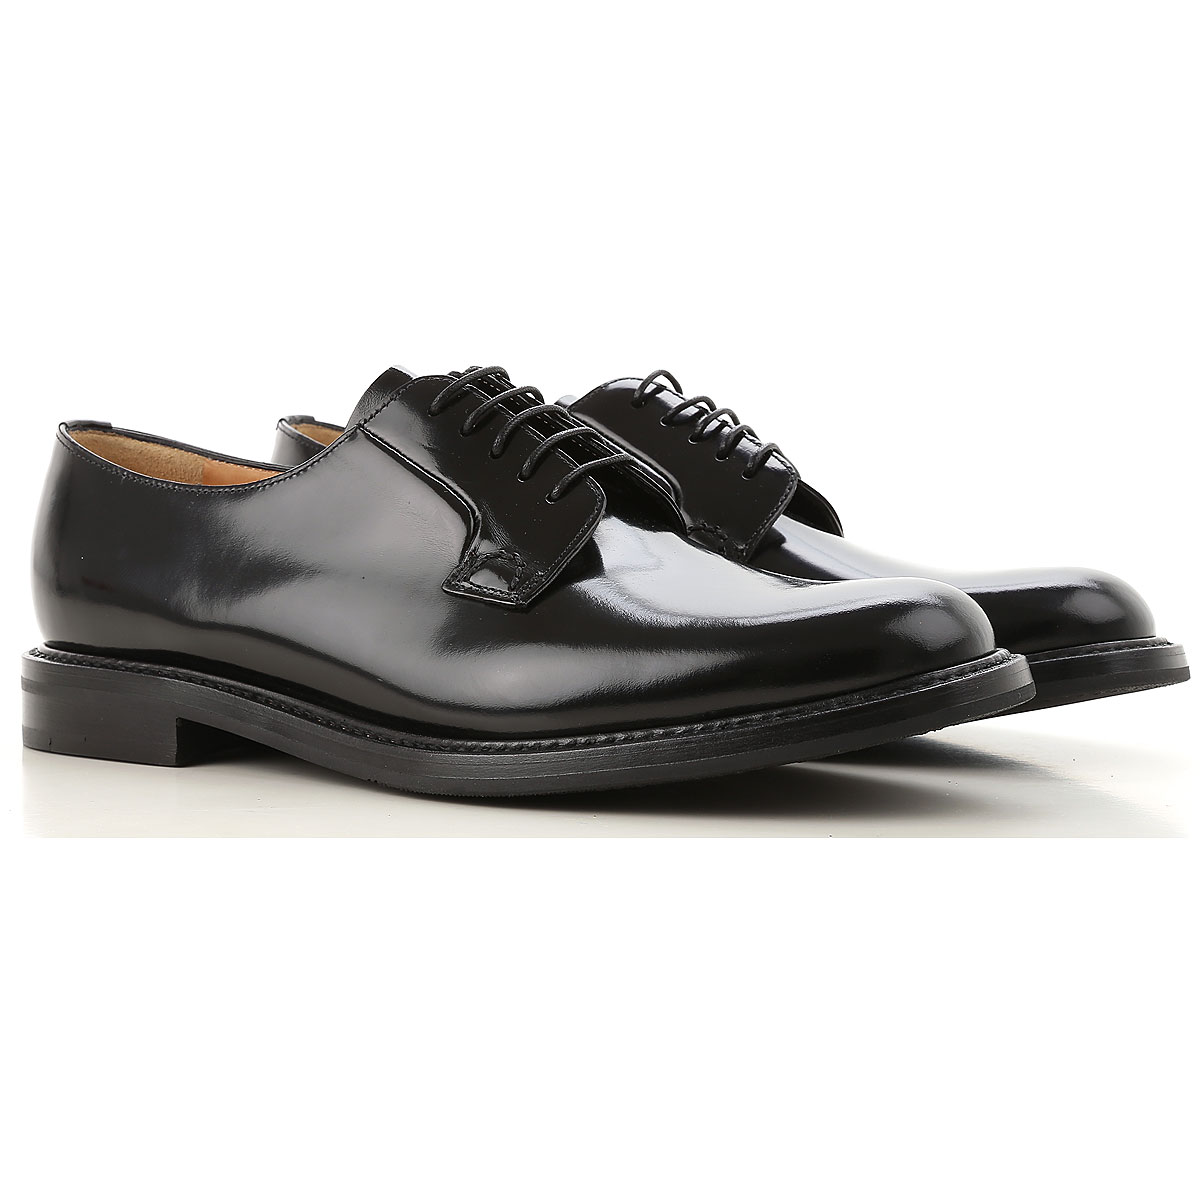 Image of Church's Oxford Lace up Shoes for Women, Black, Leather, 2017, 10 6.5 7 8 8.5